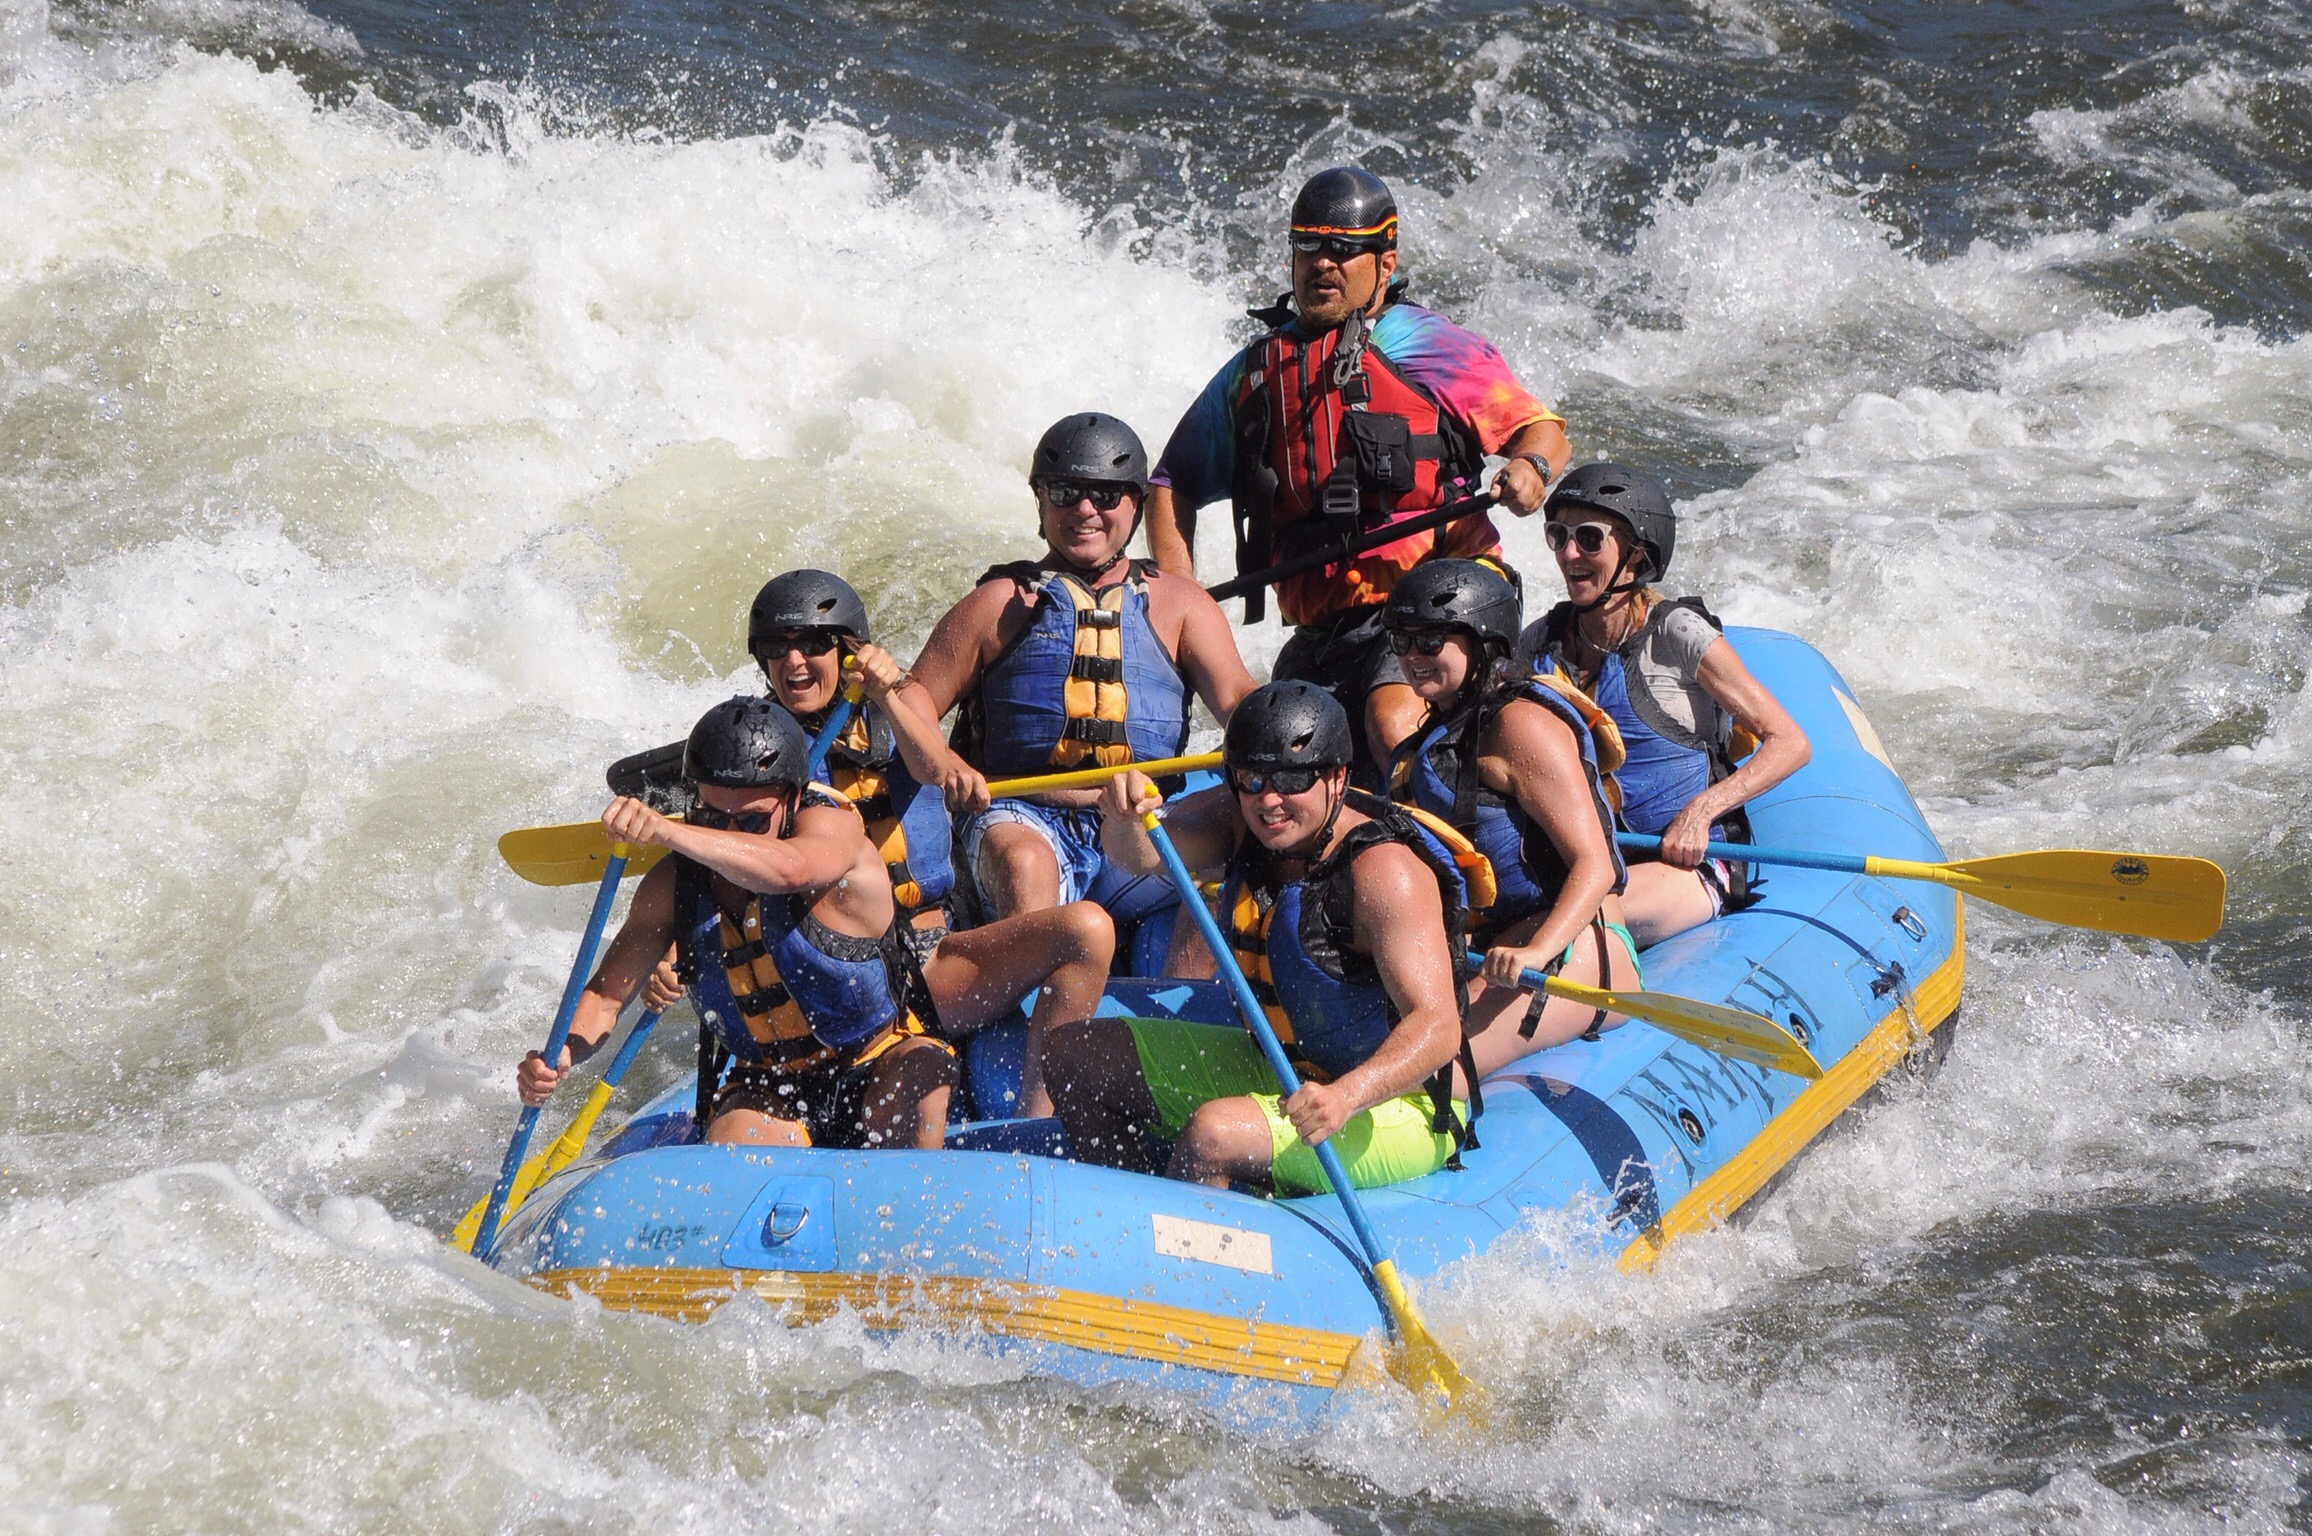 Buenzlis river rafting on the American River - beating cancer naturally while having fun - cancer th